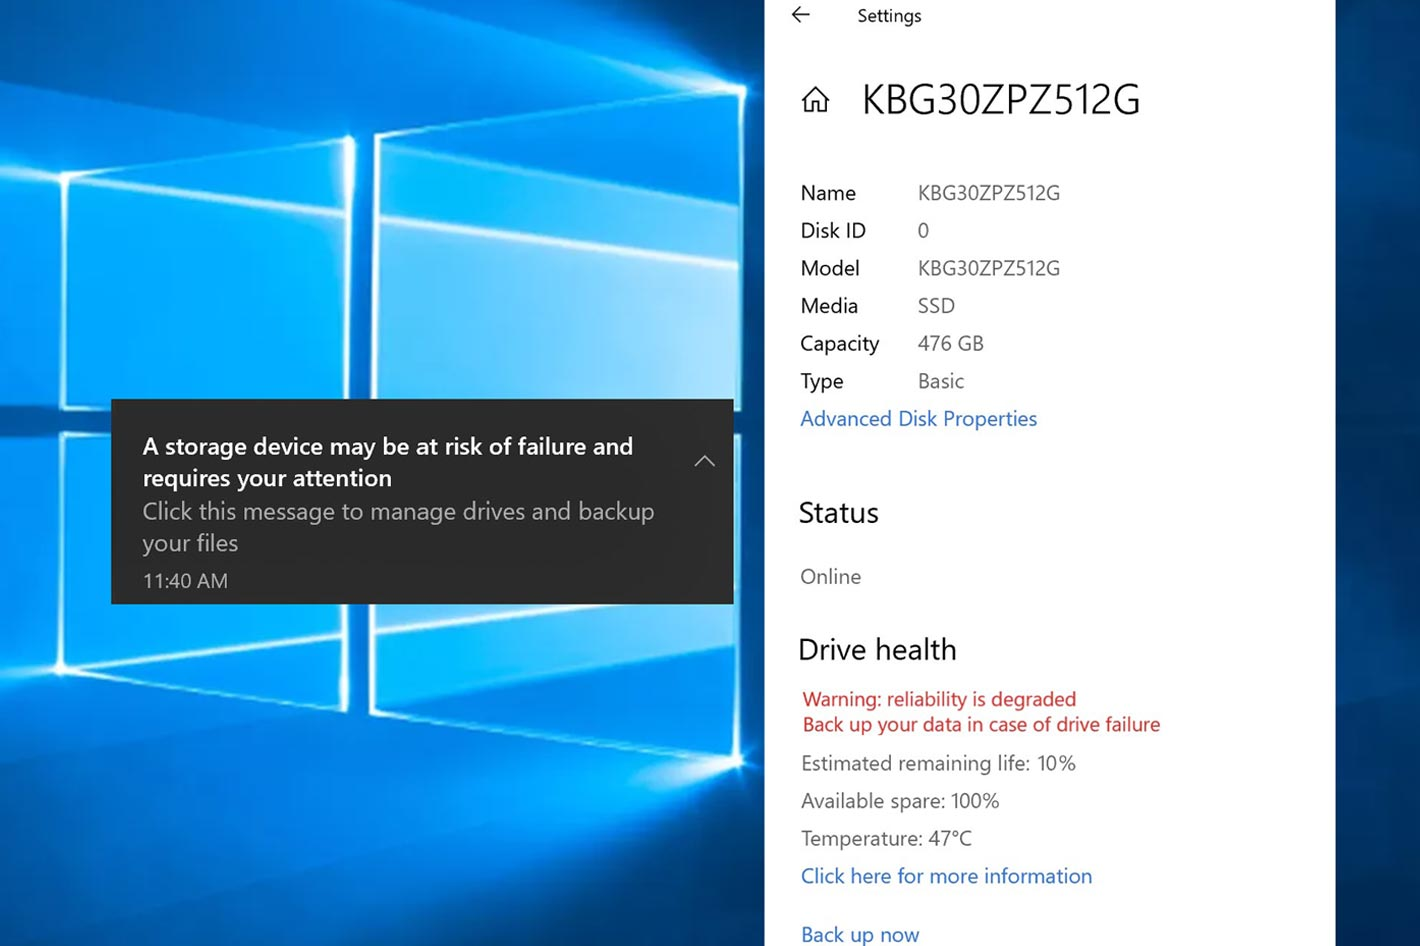 Windows 10 will monitor your NVMe SSDs health